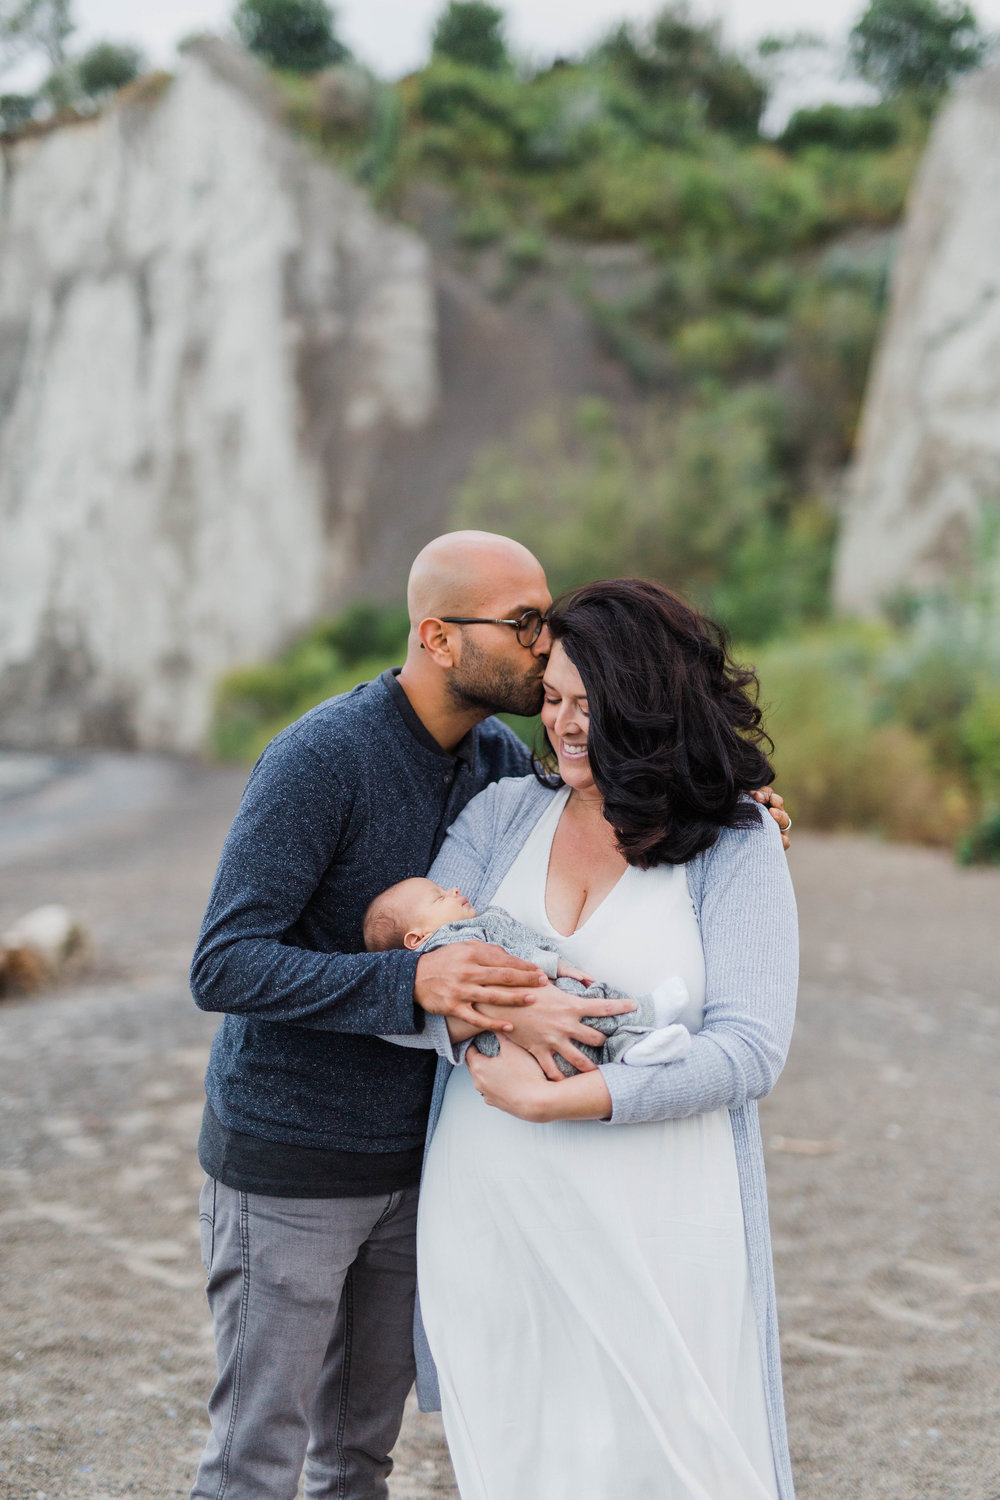 Danielle-Giroux_Lindsay-Sunil_Newborn-Session_Scarborough-Bluffs_-0061.jpg